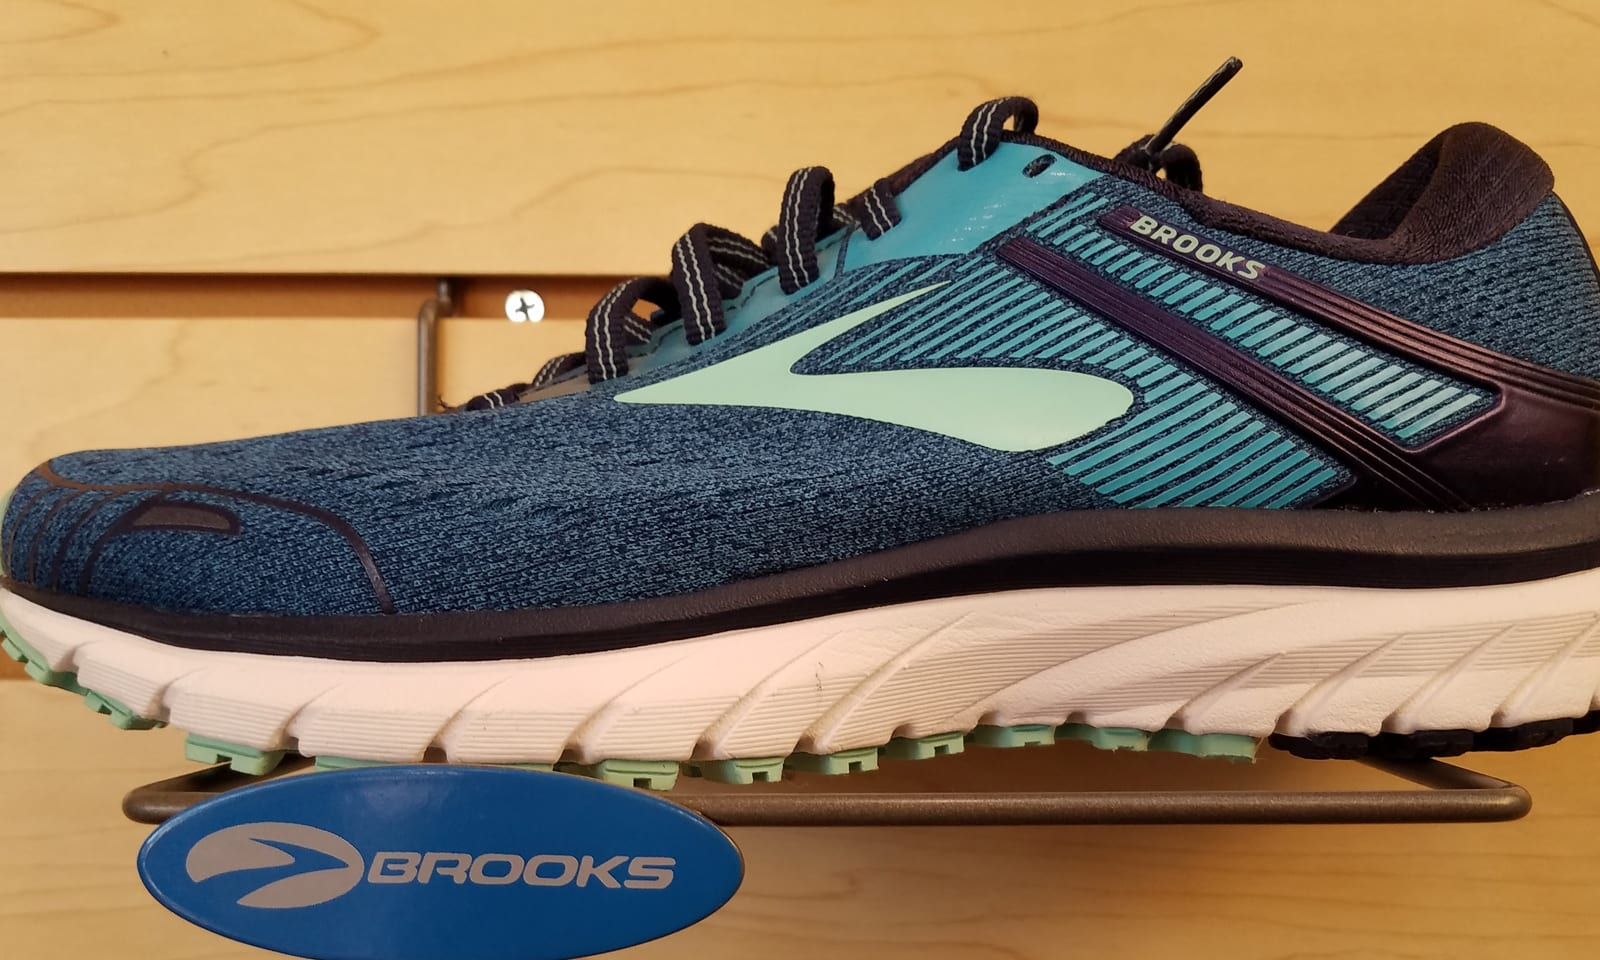 970a91ac9143f 10 Brooks Running Shoes   2019 Reviews   - Shoe Adviser